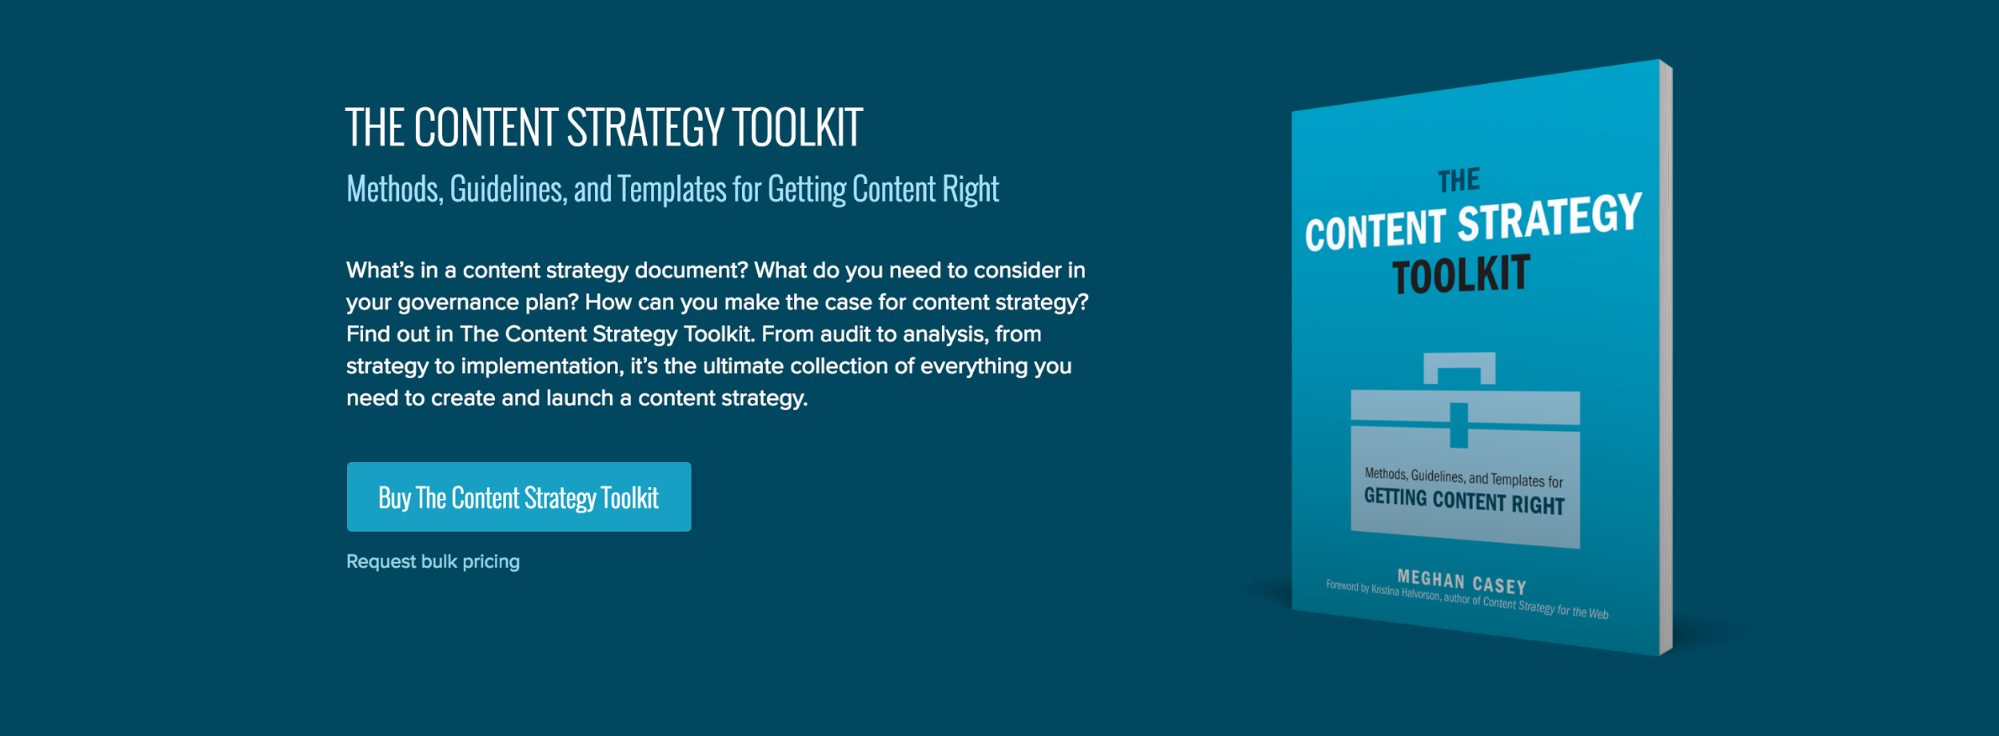 The Content Strategy Toolkit purchase page.